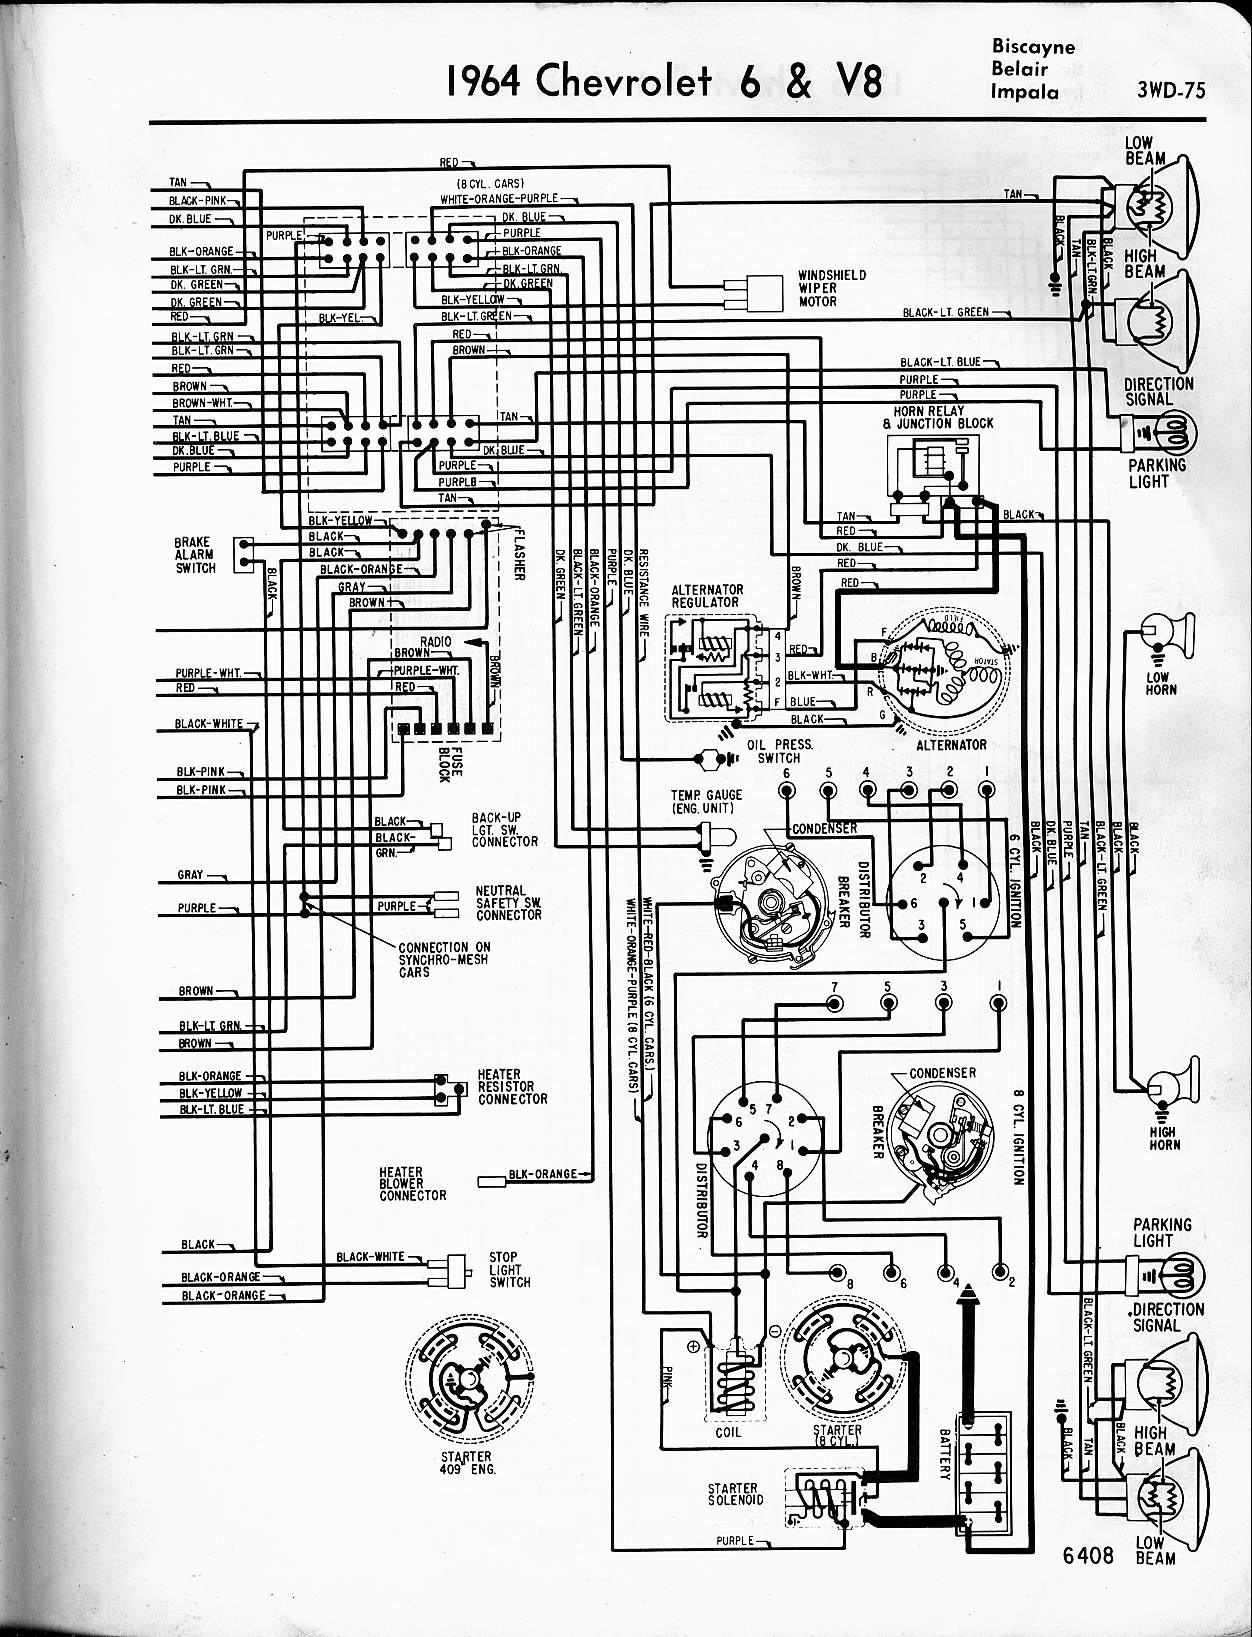 64 c10 wiring diagram | wiring diagram 64 c10 wiring diagram